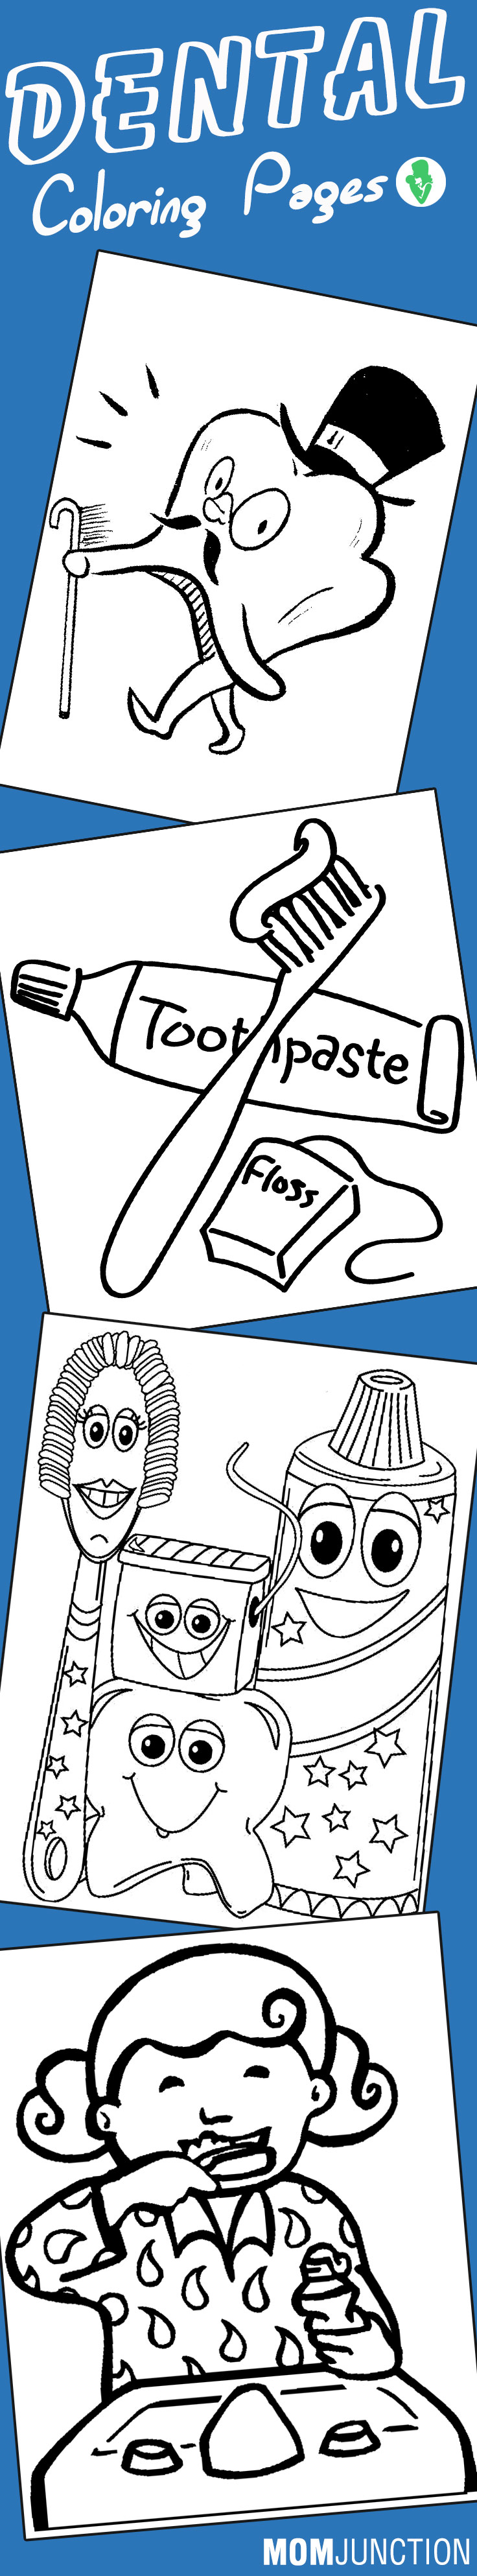 Childrens dental coloring pages - Childrens Dental Coloring Pages 55